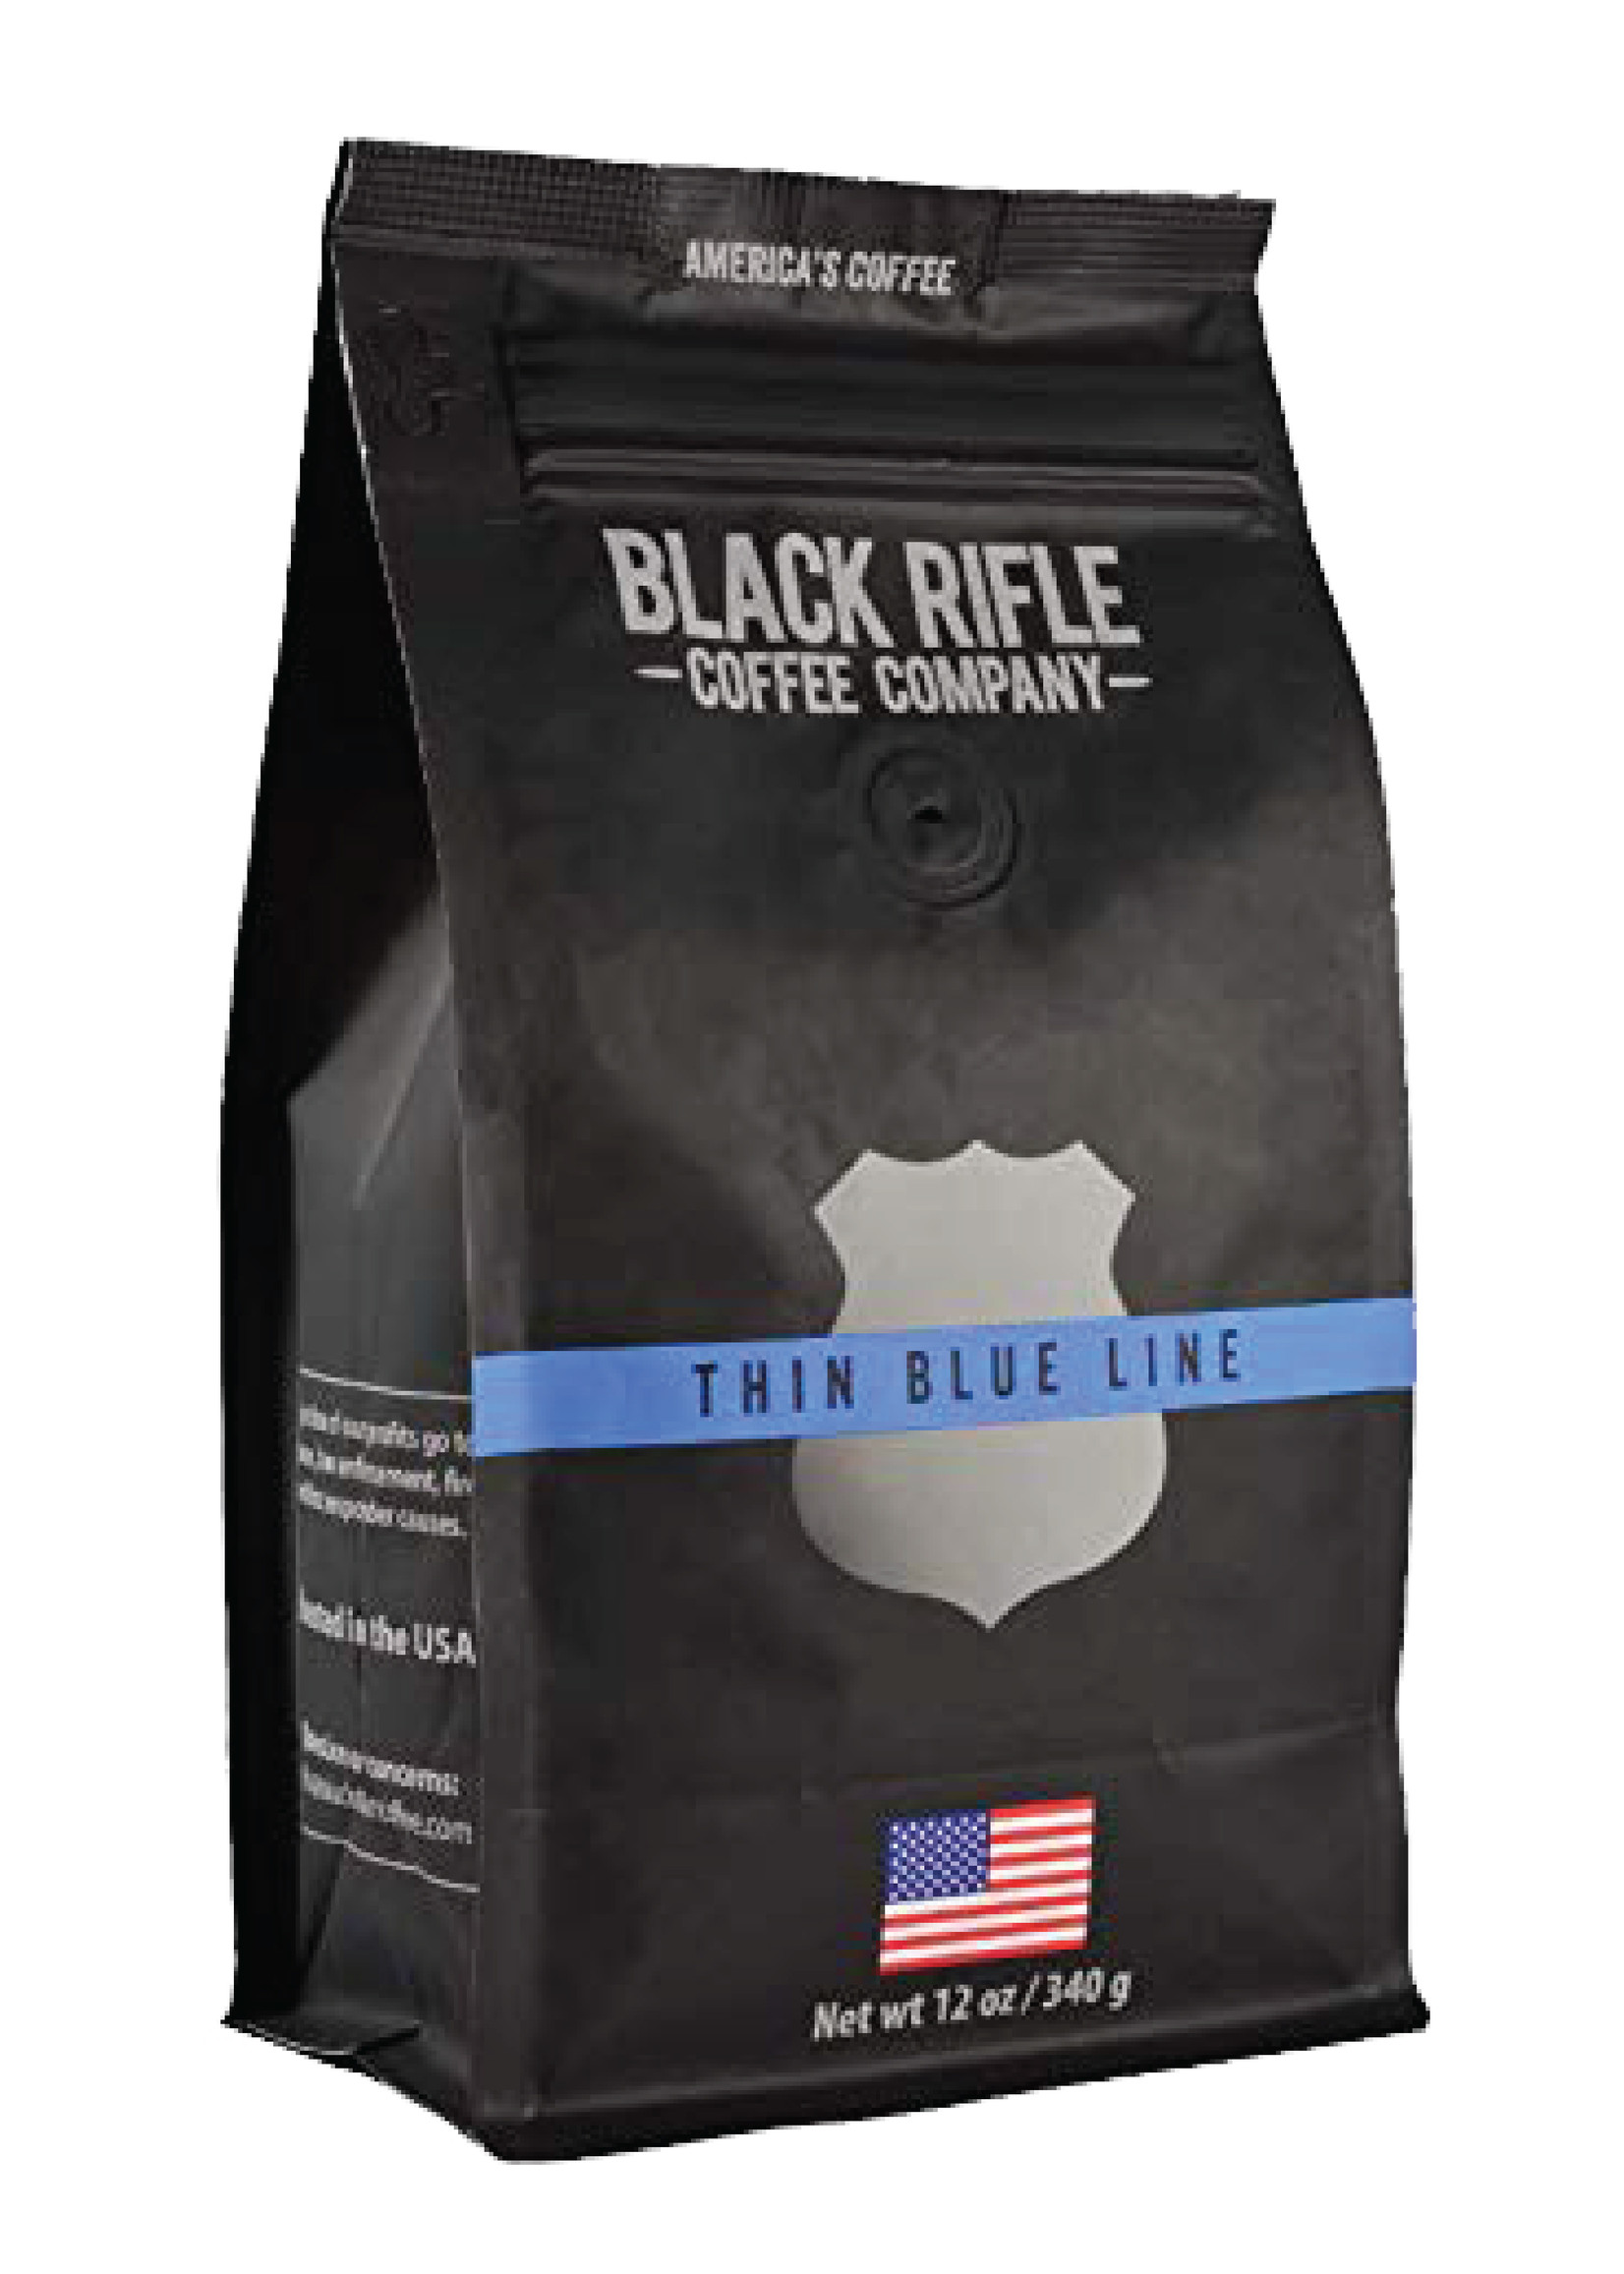 Black Rifle Coffee Company Black Rifle Coffee Company Thin Blue Line Coffee Roast Ground